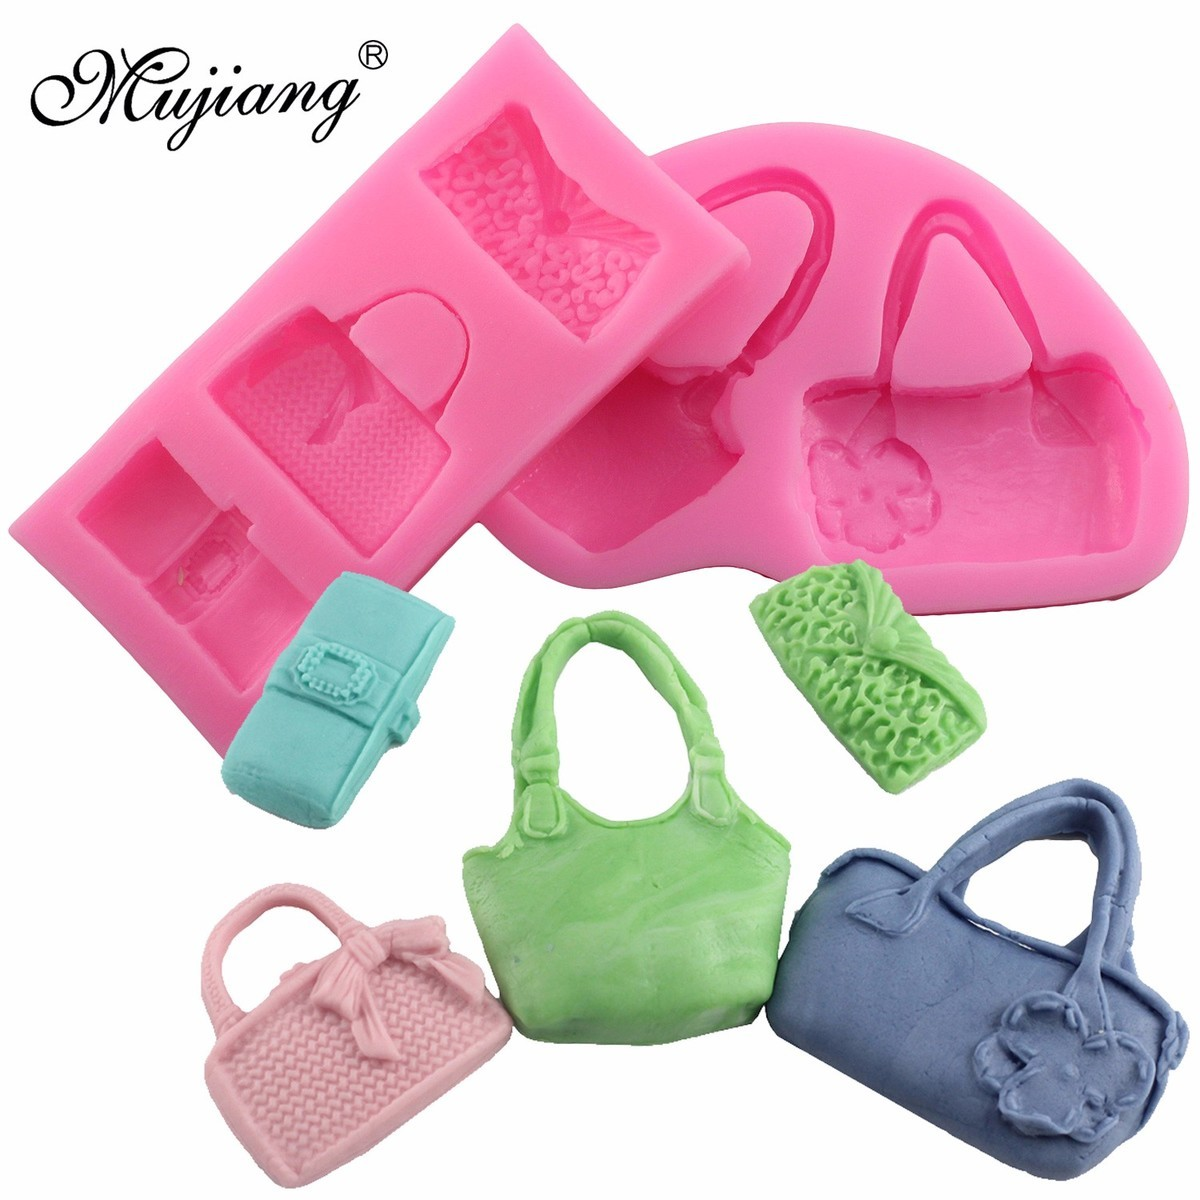 Mujiang Bags Candy Silicone Mold Sugarcraft Fondant Cake Decorating Tools 3d Baking Cake Chocolate Molds Soap Polymer Clay Mould Home & Garden